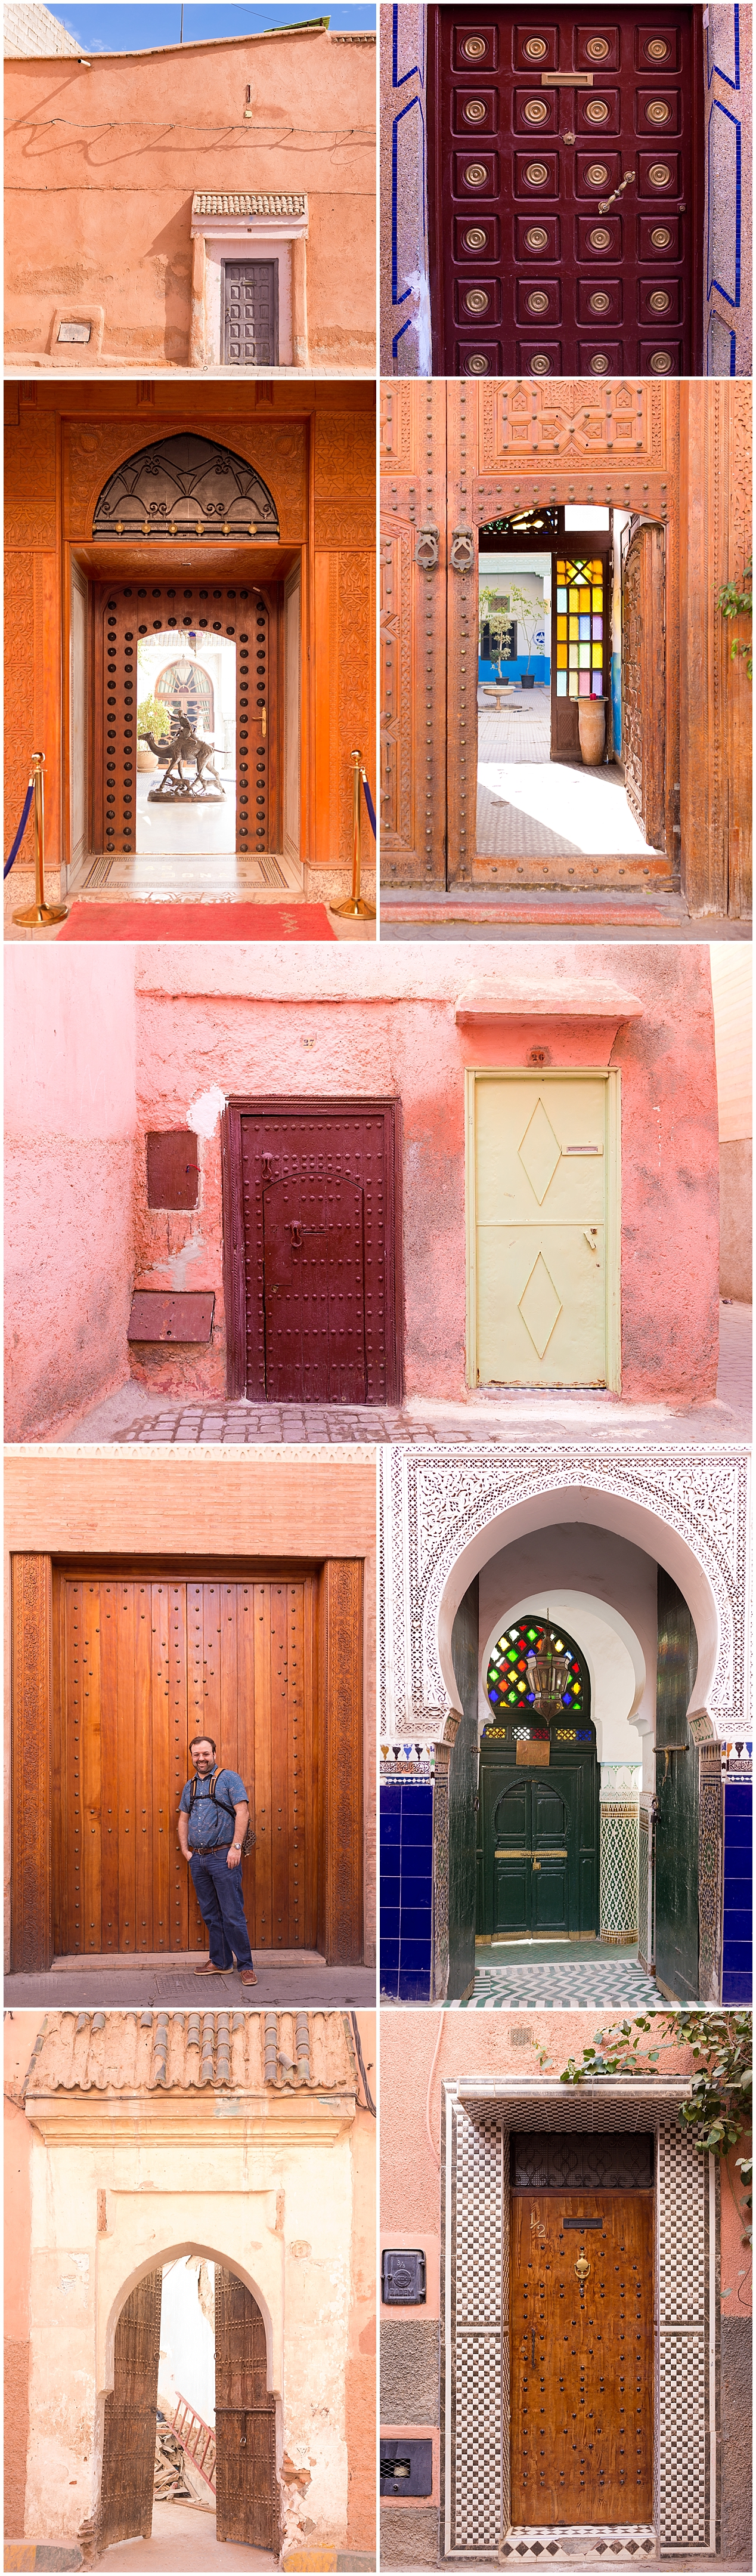 beautiful wooden doors in Marrakech, Morocco